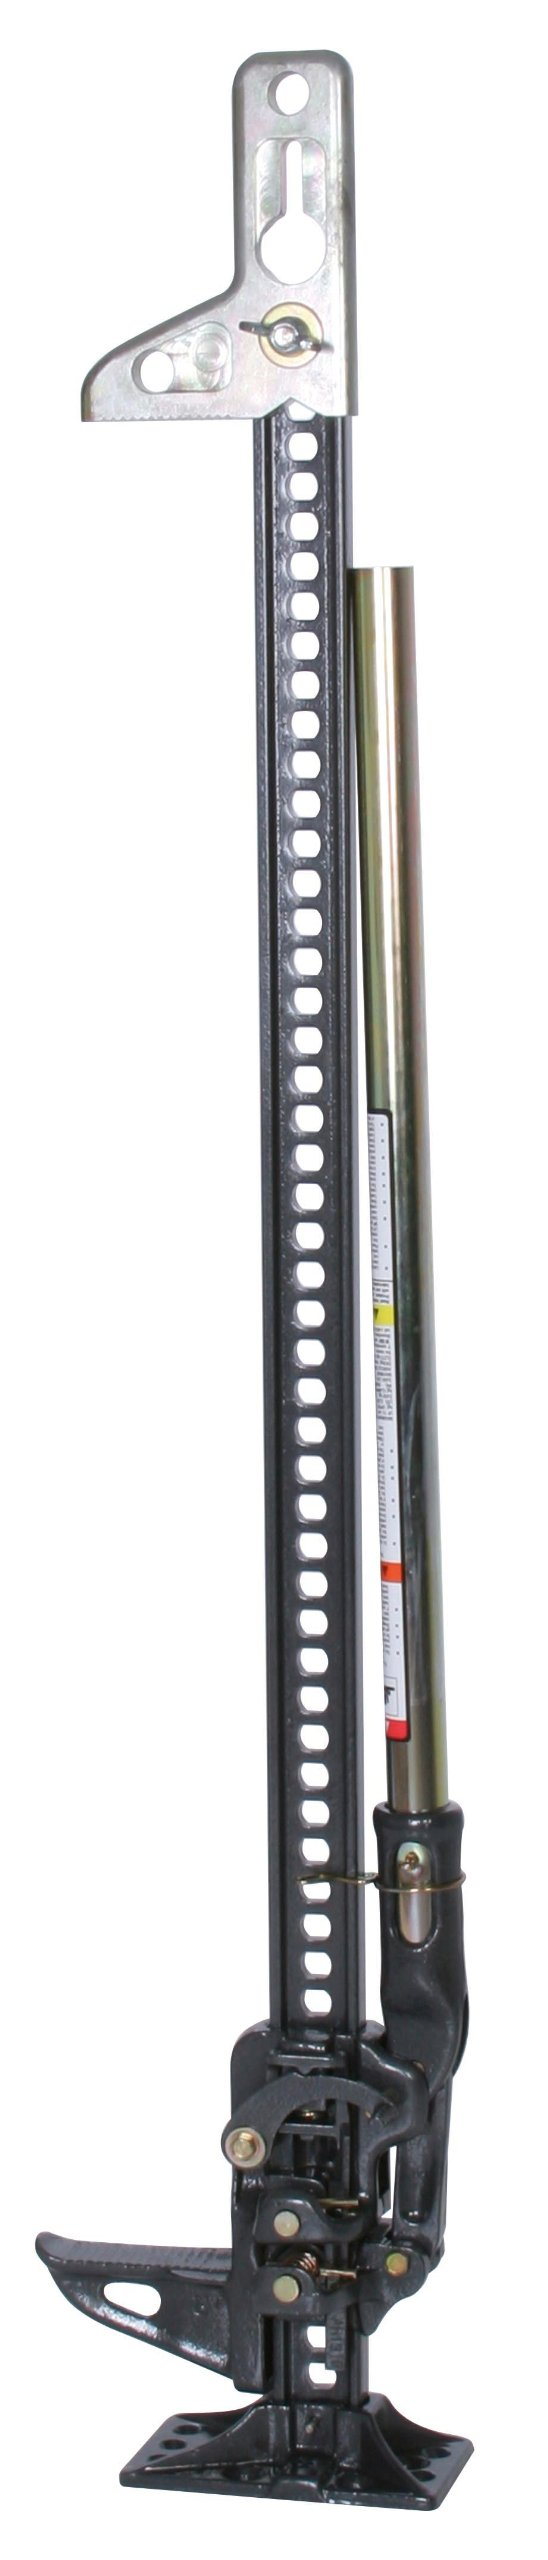 Hi-Lift XT-605 60'' X-TREME Jack by Hi-Lift